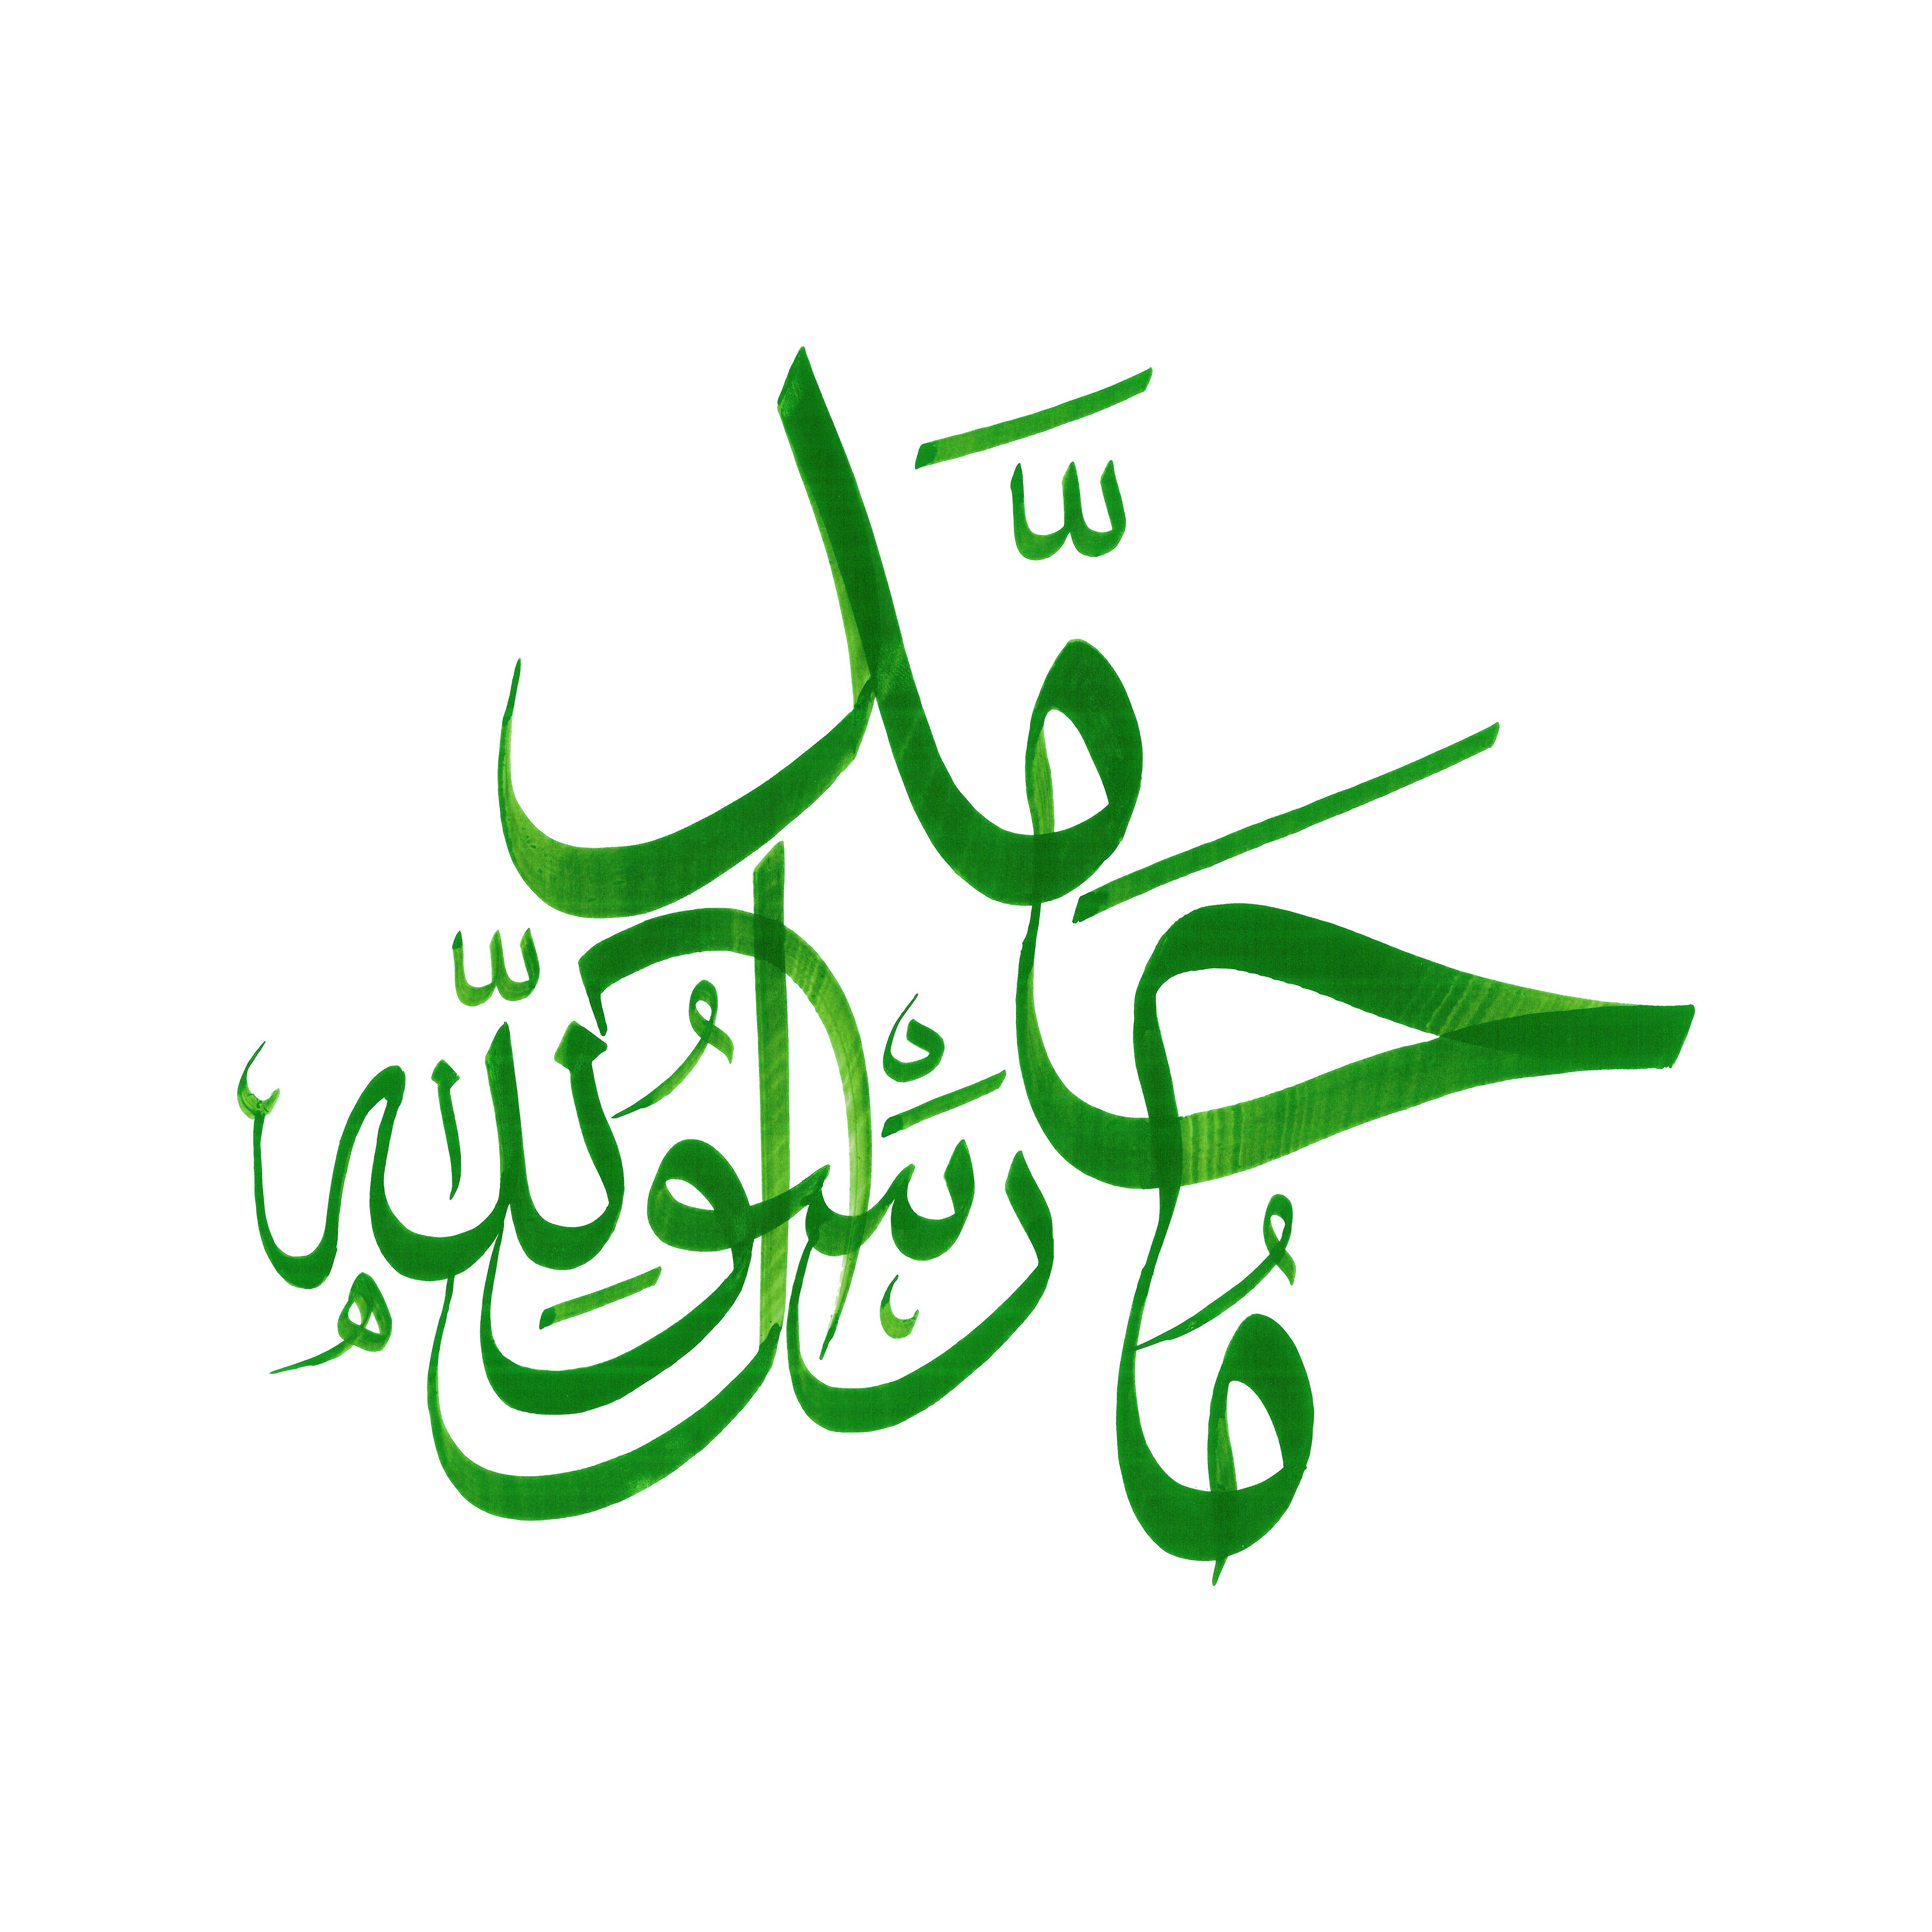 Pin By Alsadr On Calligraphy In 2020 Arabic Calligraphy Calligraphy Allah